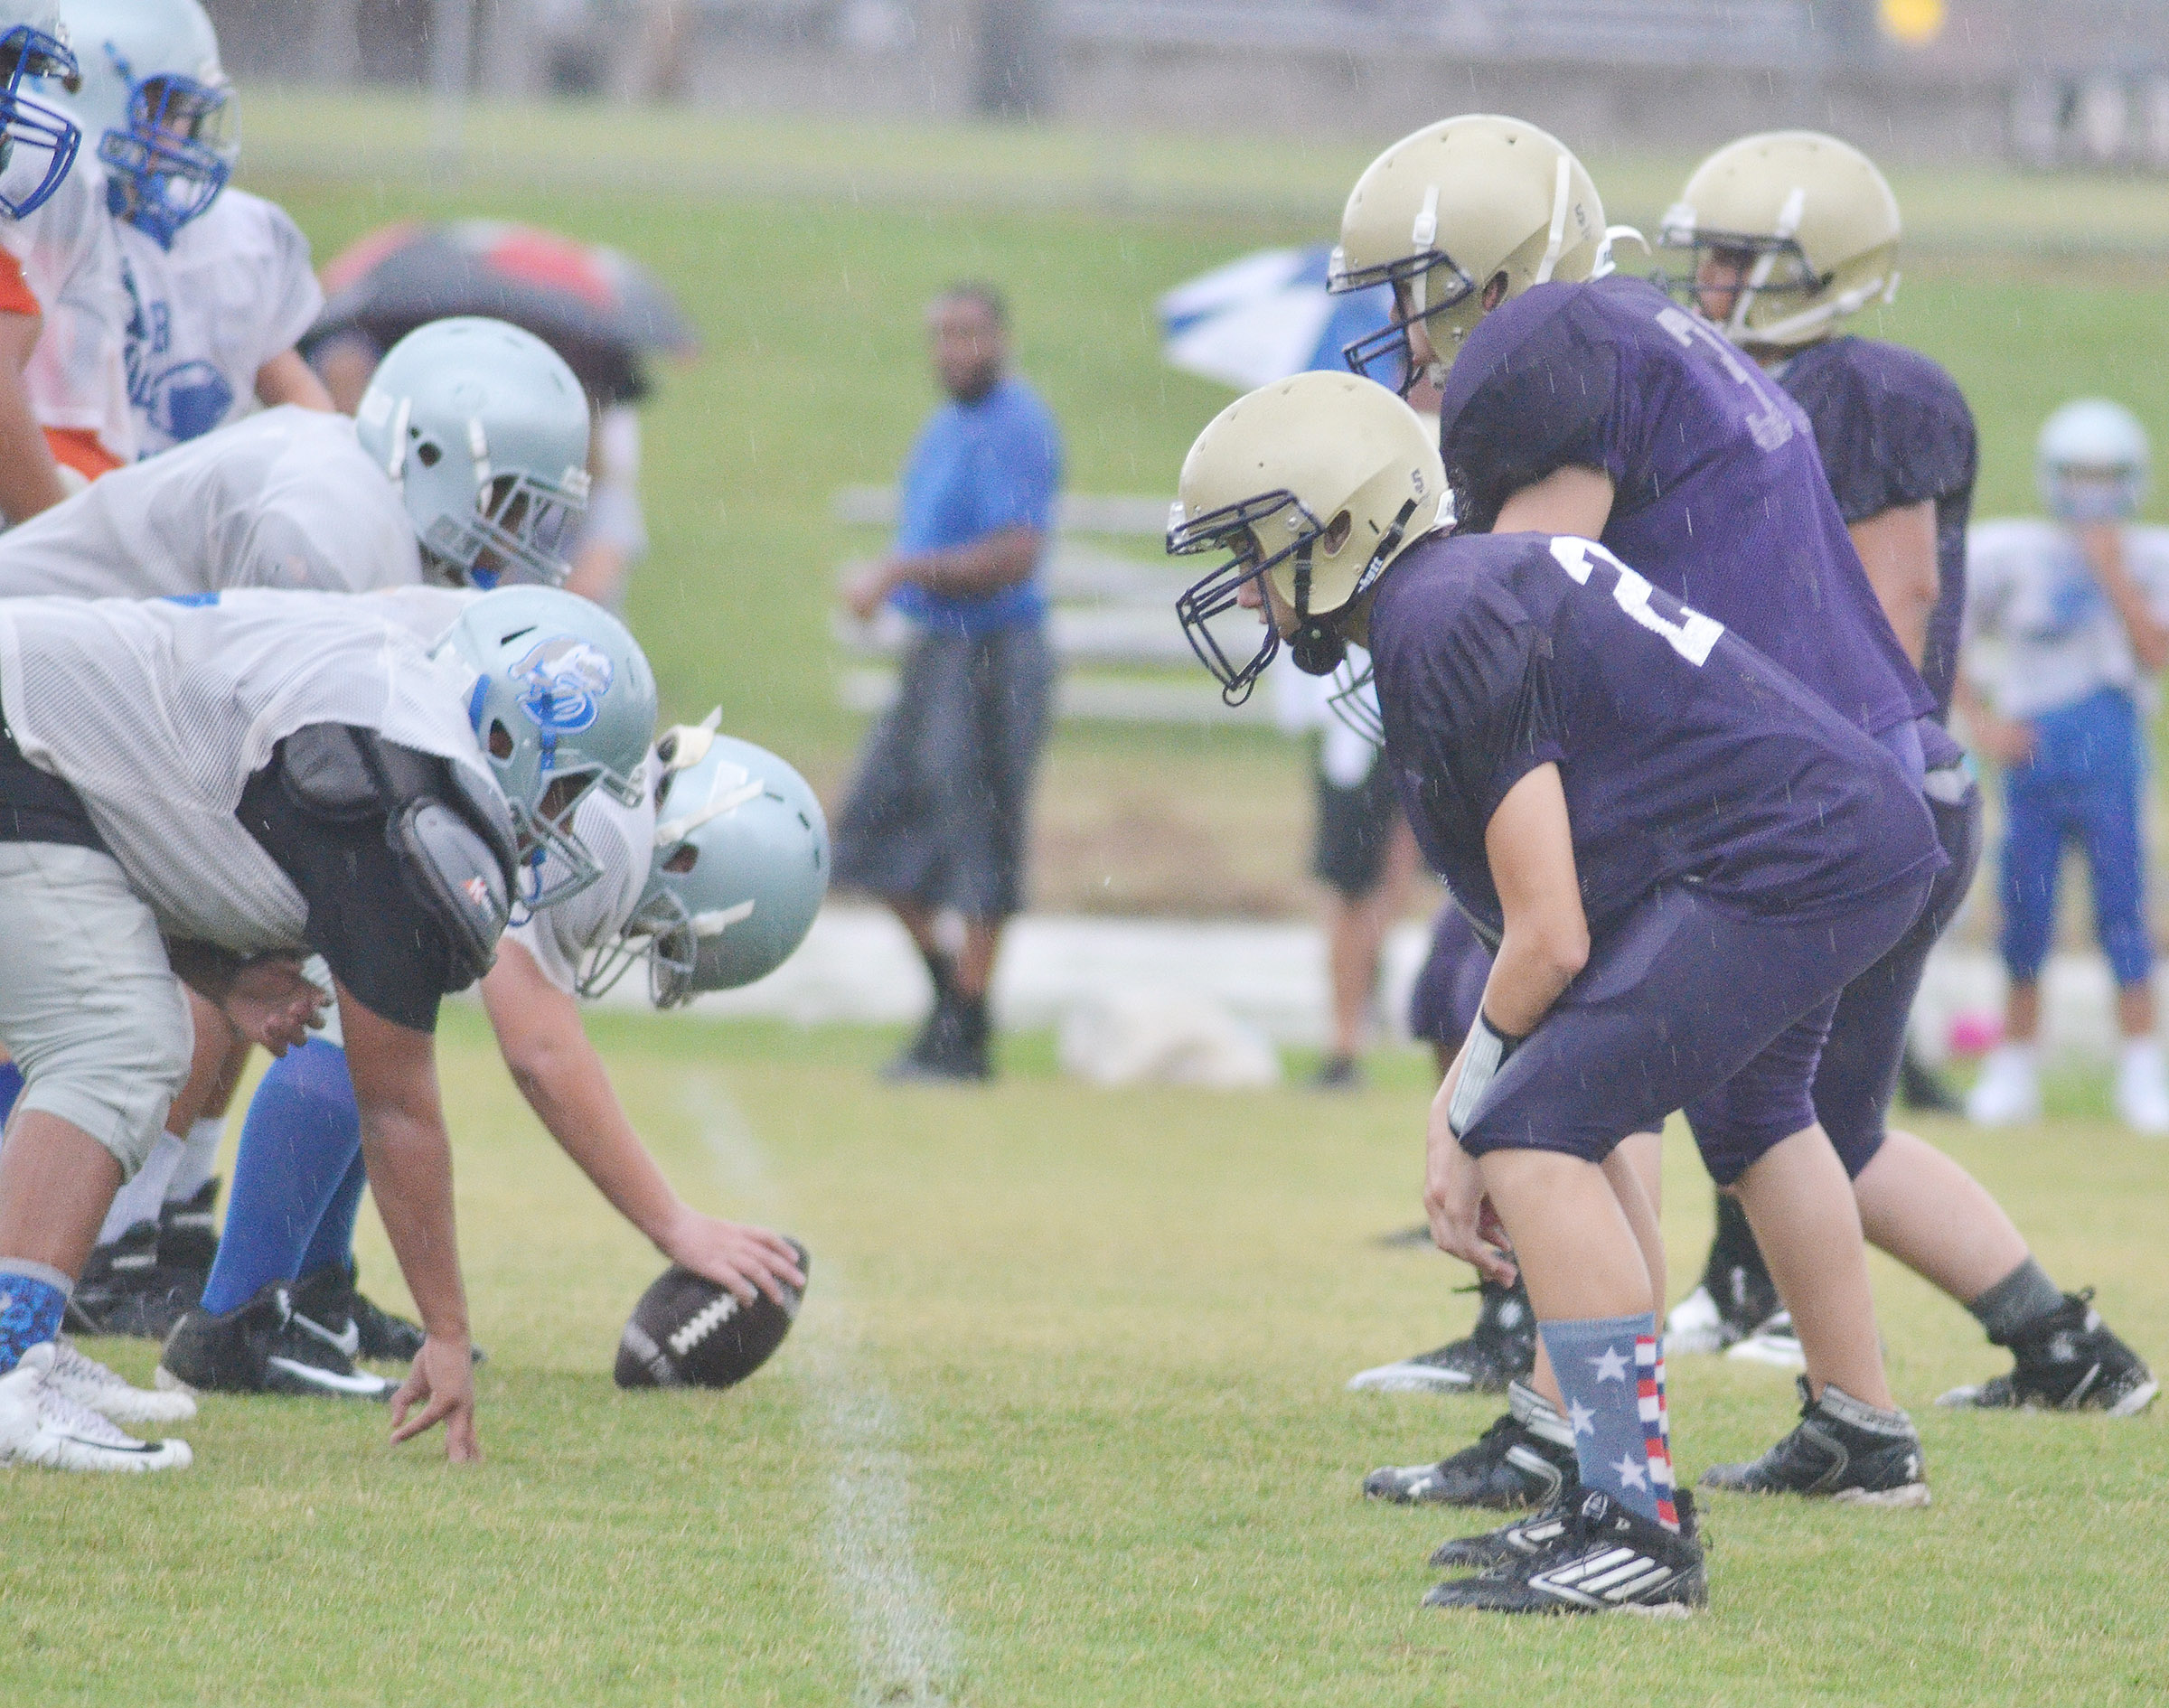 CMS defensive line players get ready for the snap.